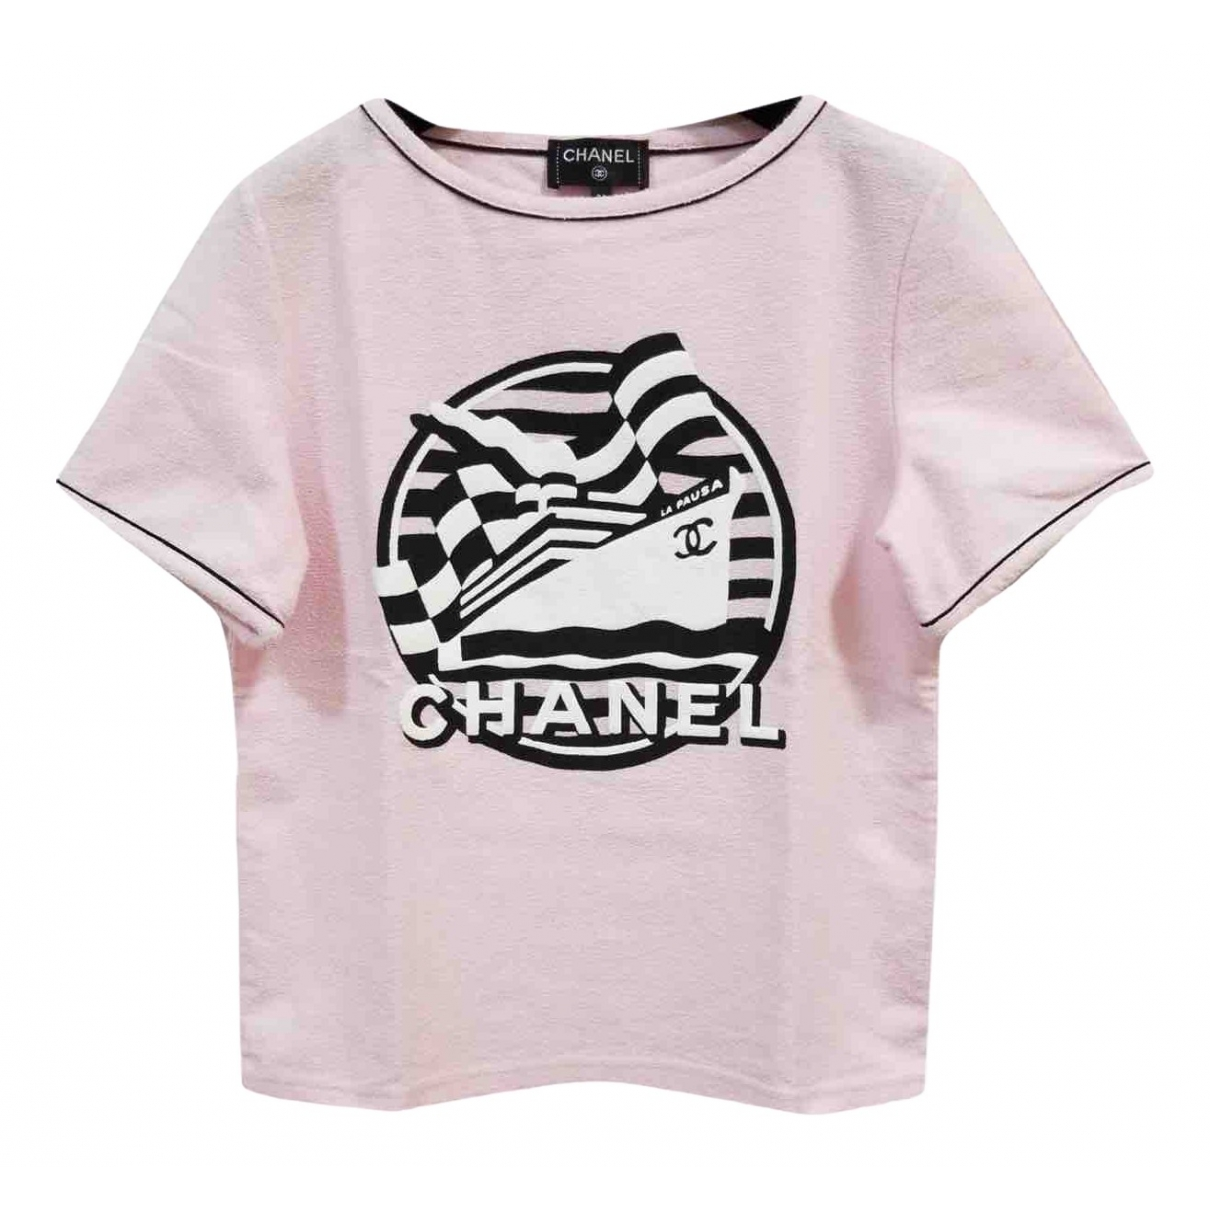 Chanel \N Pink Cotton  top for Women 34 FR